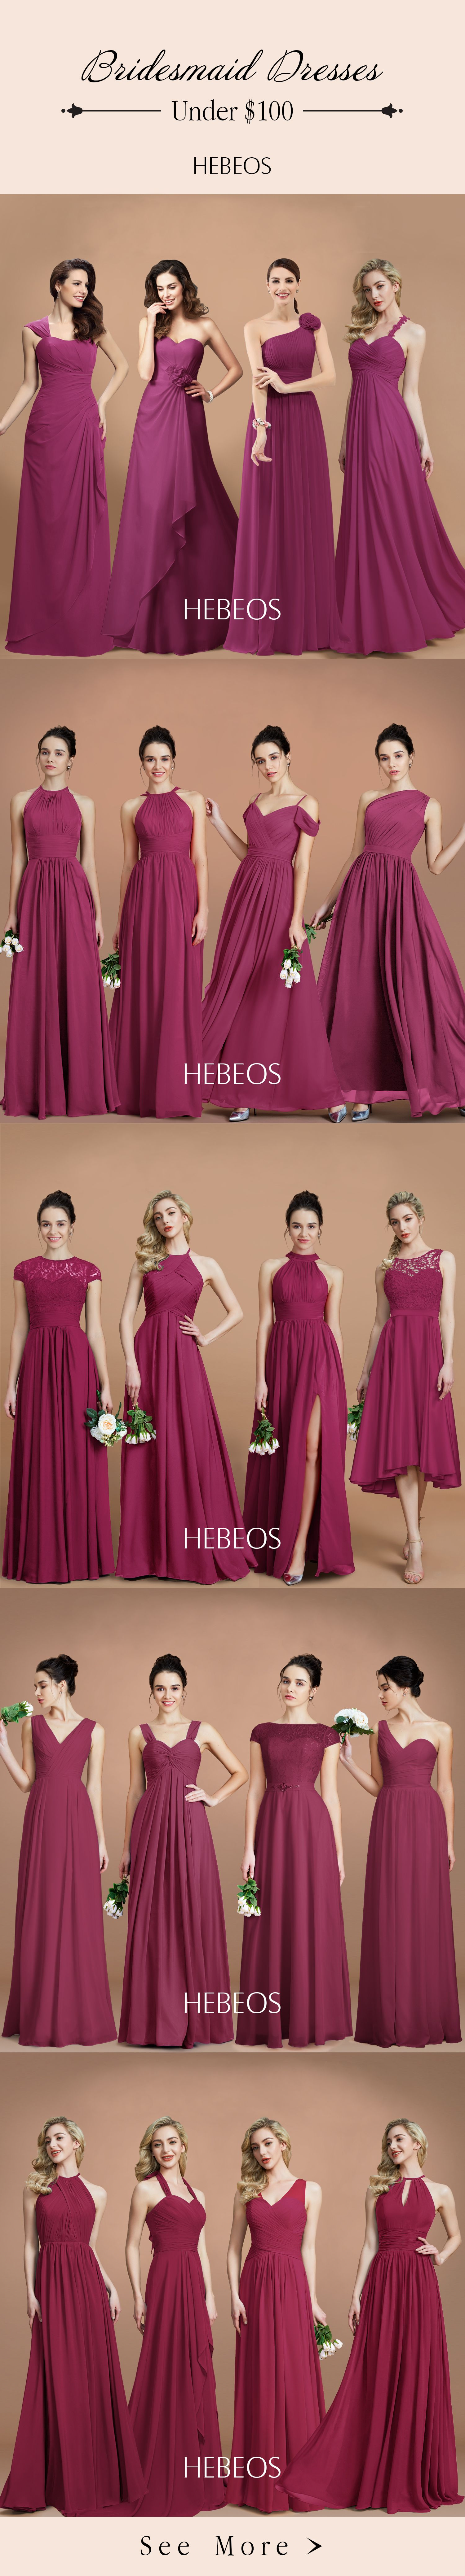 Spice up your traditional red bridesmaid dresses with burgundy spice up your traditional red bridesmaid dresses with burgundy bridesmaid dresses shop at hebeos ombrellifo Gallery